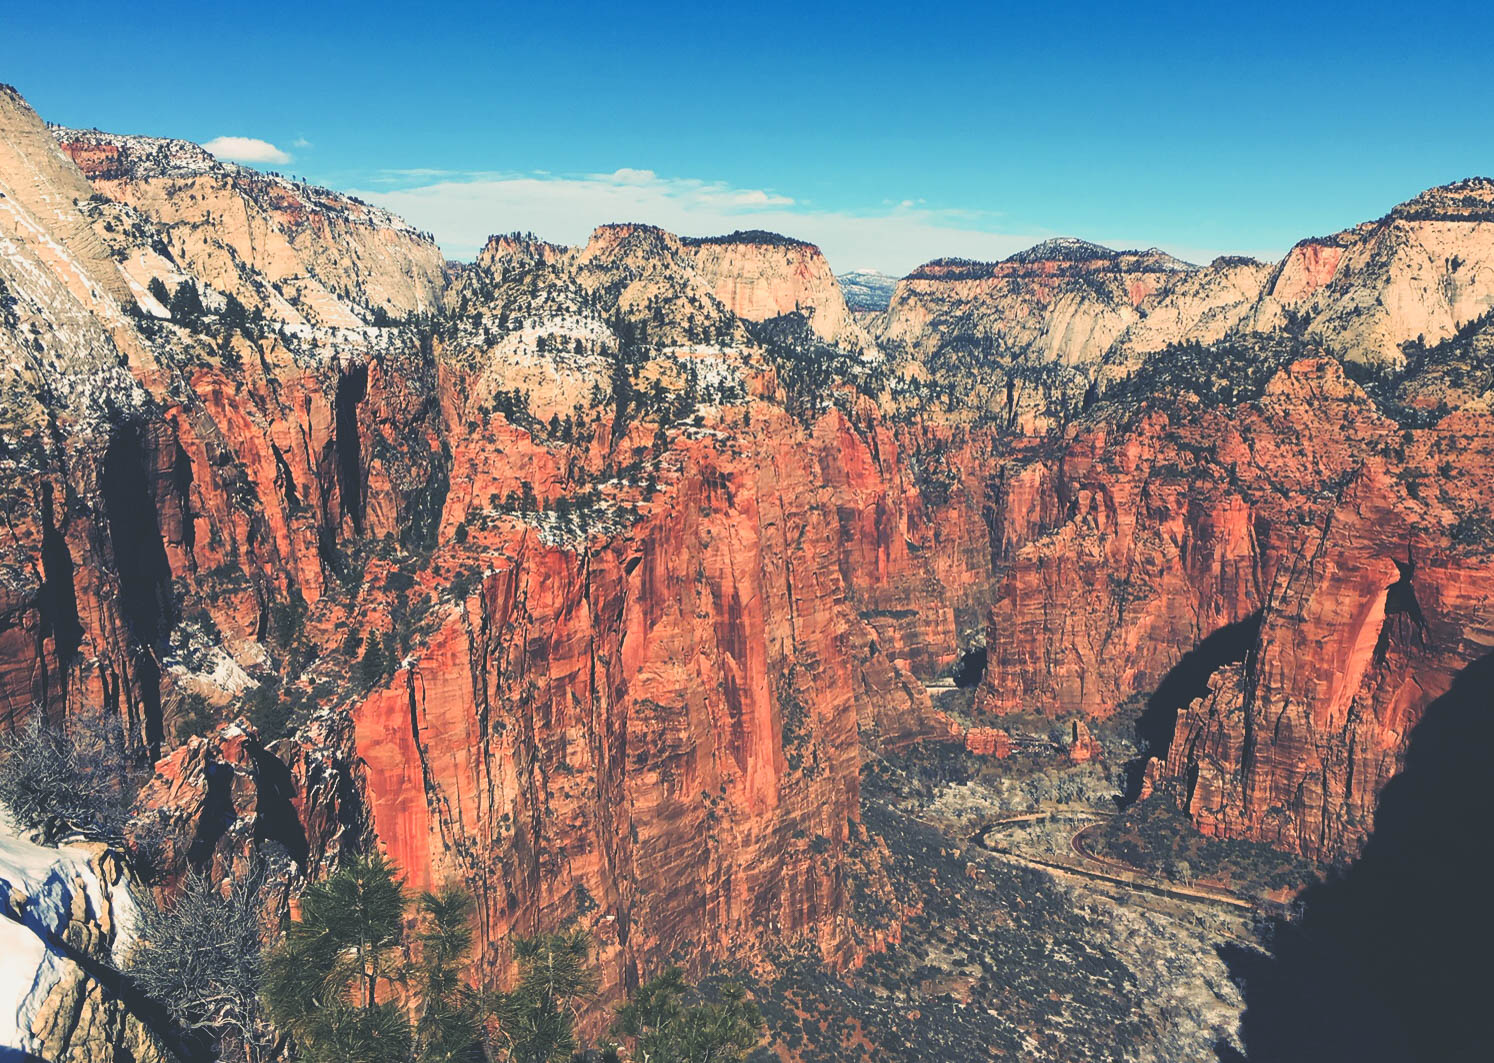 view from the other side of Angel's Landing